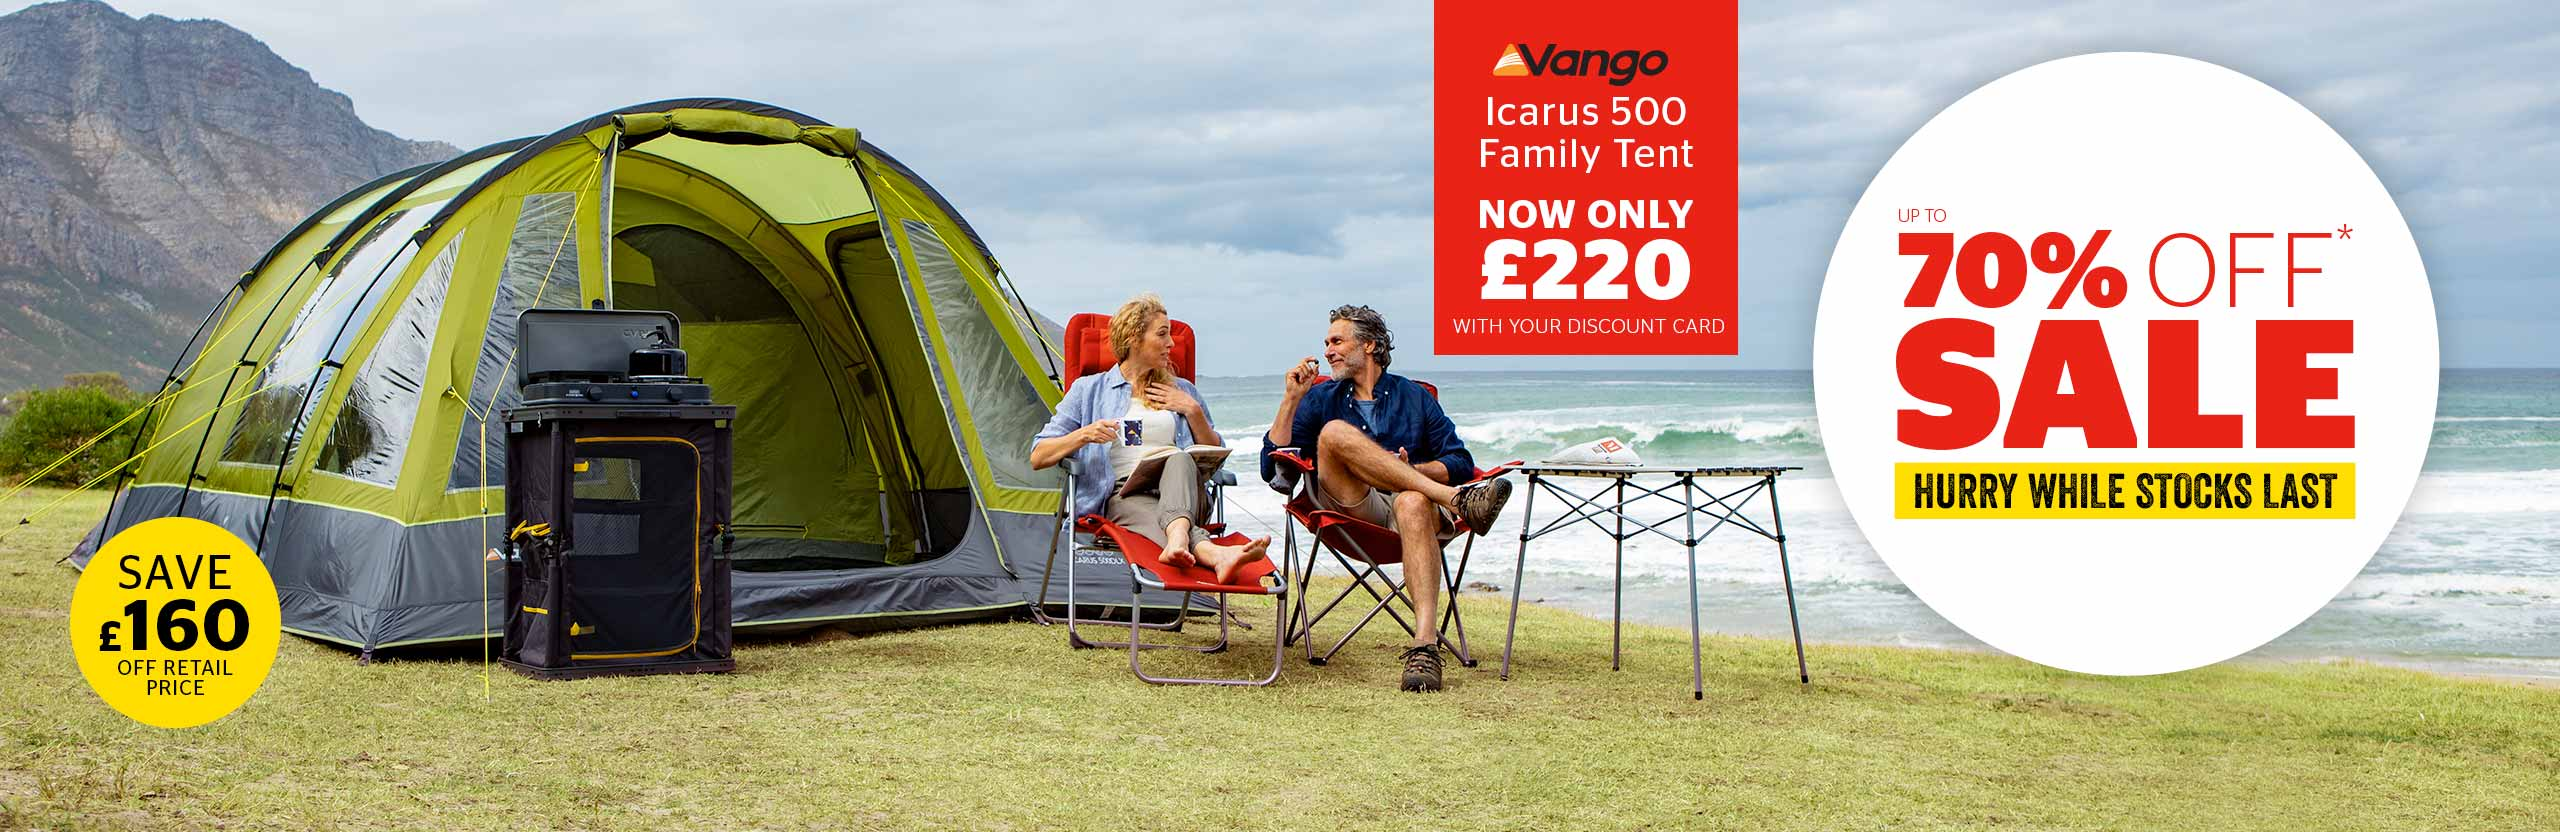 bd36b4f34 GO Outdoors: Tents & Camping | Outdoor Clothing | Walking Boots